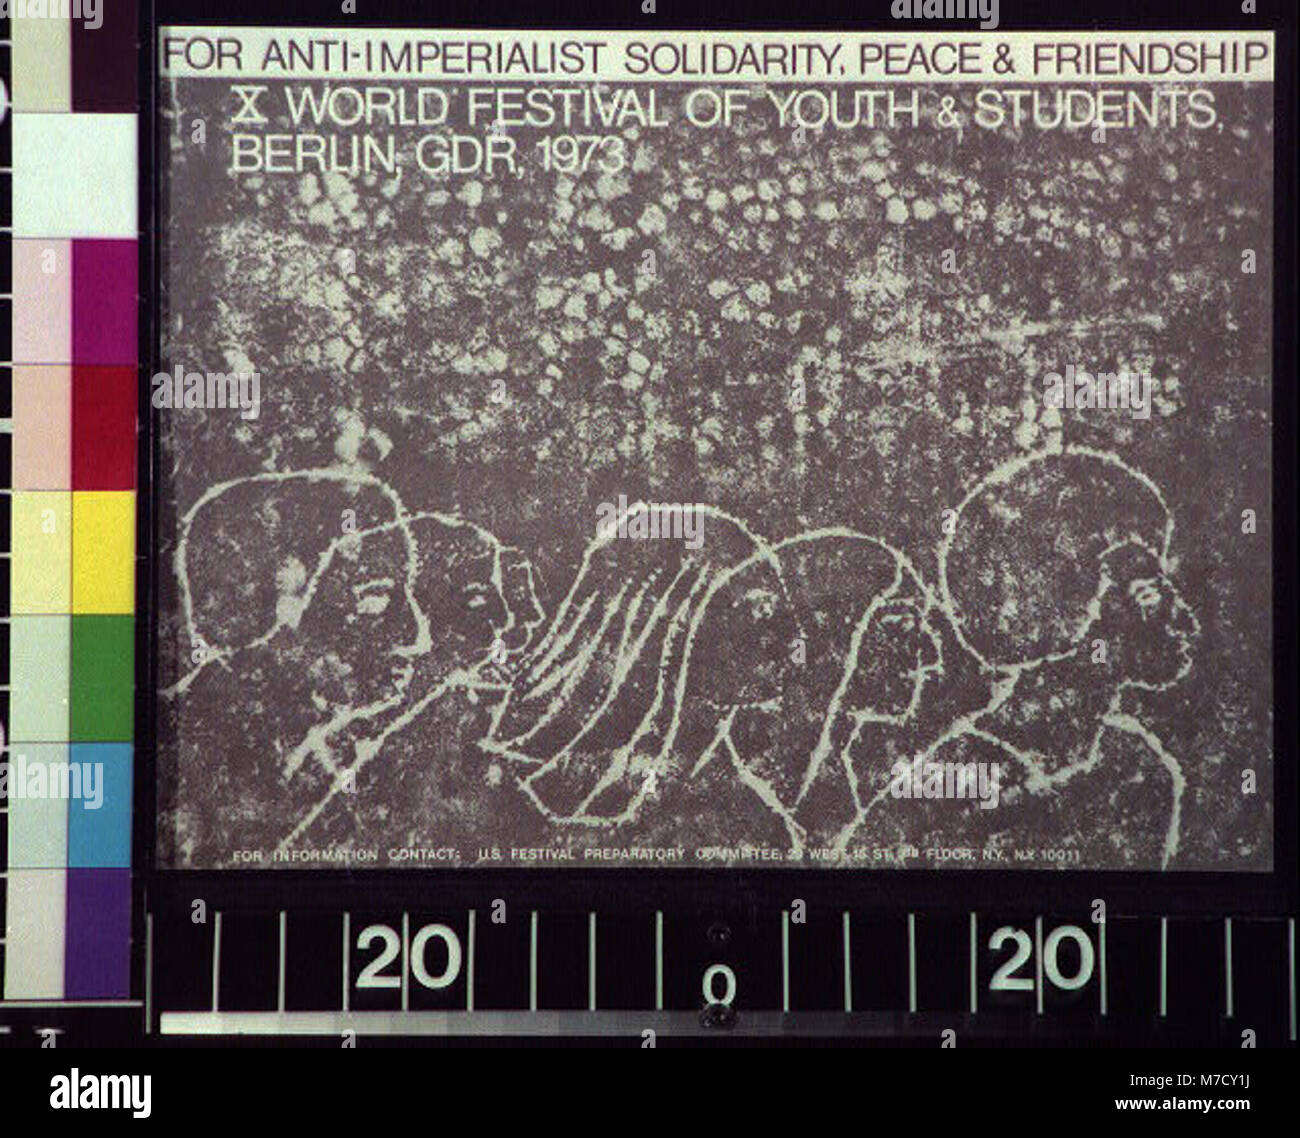 For anti-imperialist solidarity, peace & friendship LCCN2015648065 - Stock Image